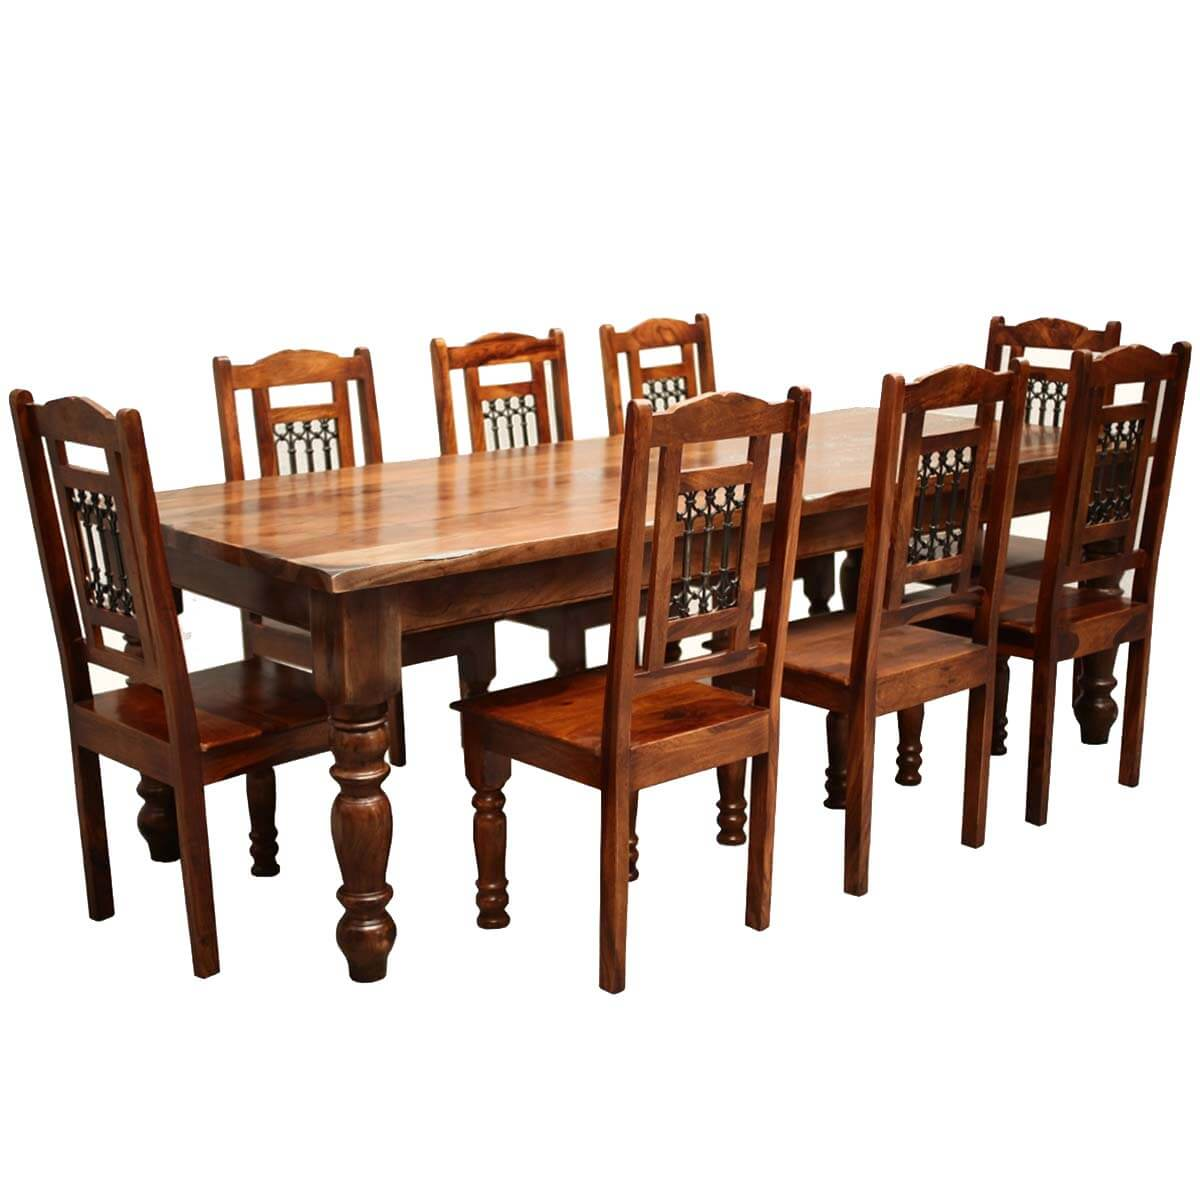 Rustic furniture solid wood large dining table 8 chair set for Fancy dining table and chairs